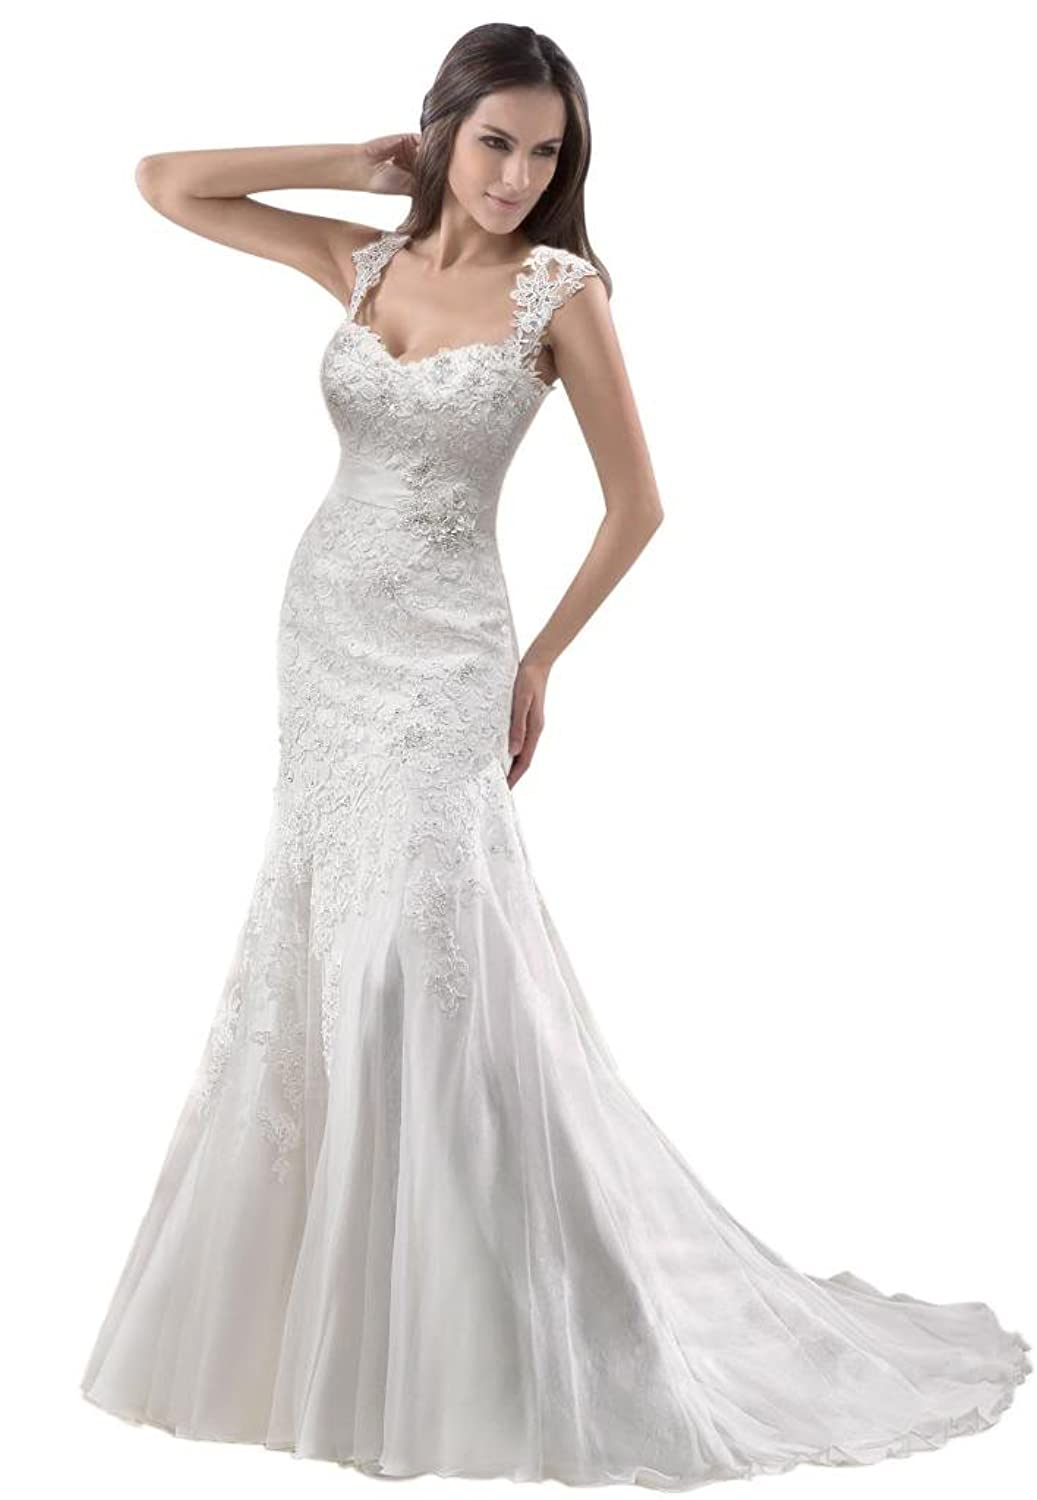 George Bride Removable Lace Strap Chapel Train Wedding Dress At